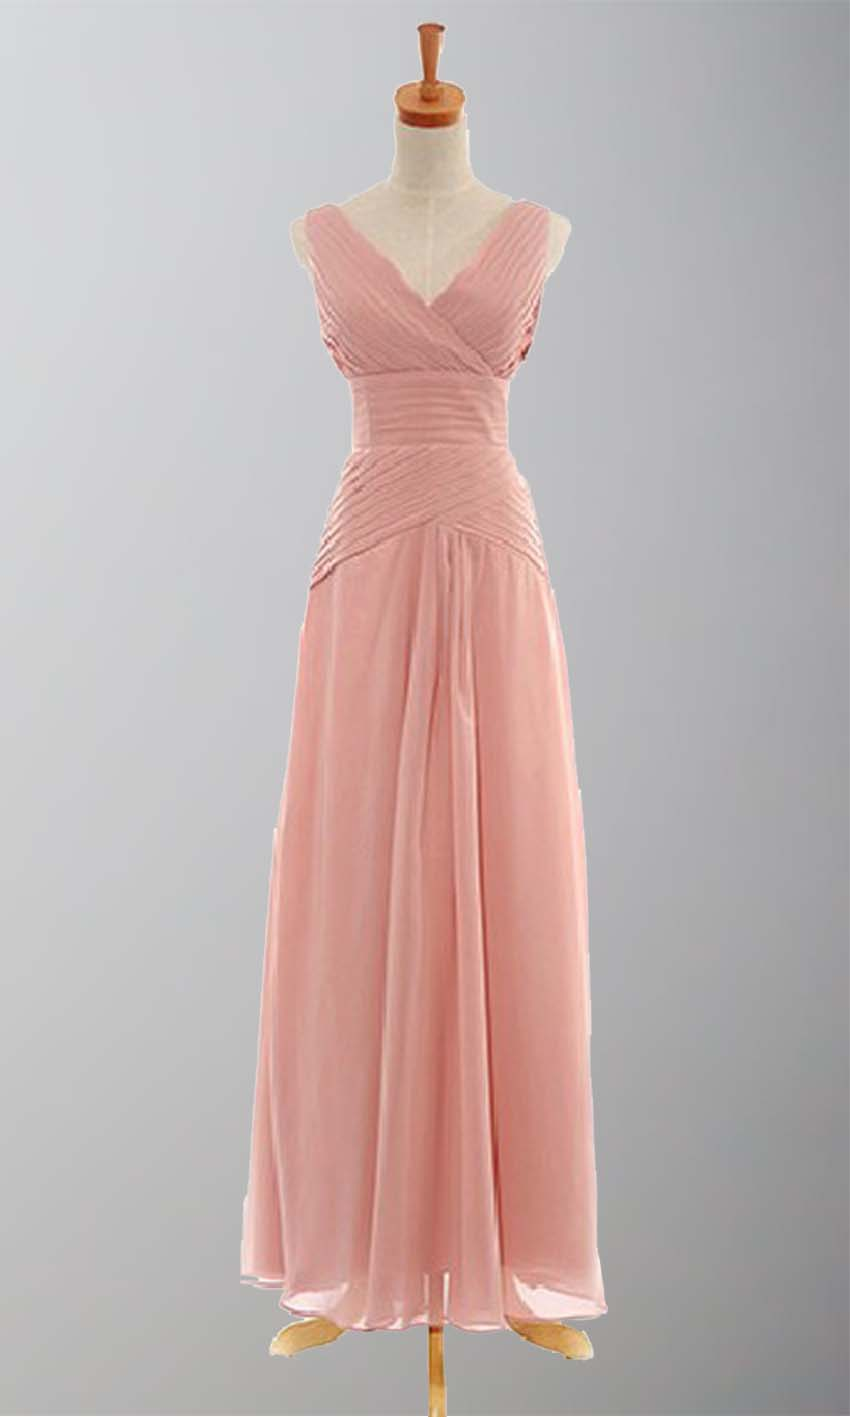 Decent Draped V-neck Long Formal Dress KSP019 [KSP019] - £93.00 : Cheap Prom Dresses Uk, Bridesmaid Dresses, 2014 Prom & Evening Dresses, Look for cheap elegant prom dresses 2014, cocktail gowns, or dresses for special occasions? kissprom.co.uk offers various bridesmaid dresses, evening dress, free shipping to UK etc.